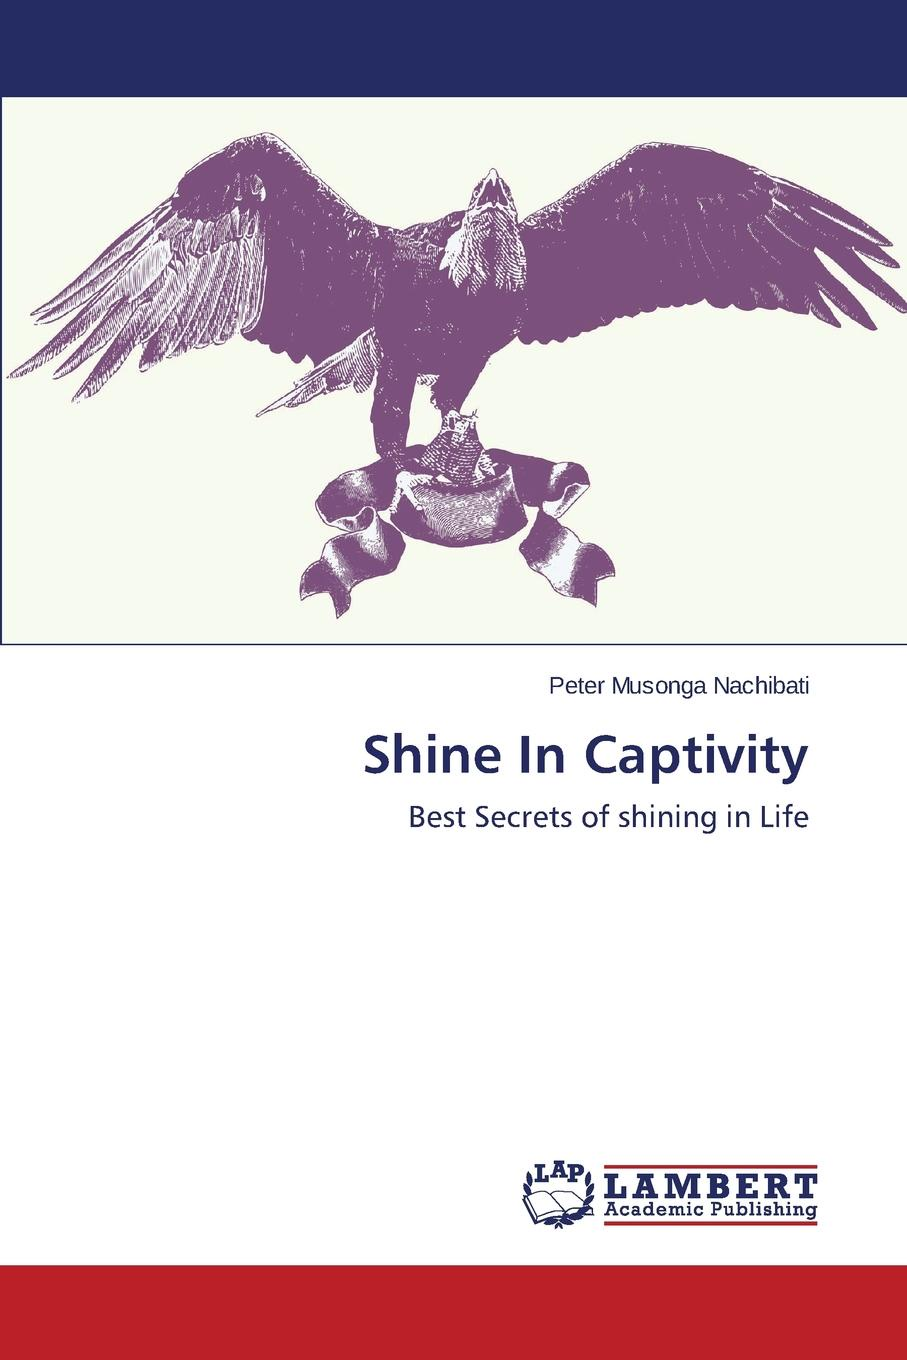 Nachibati Peter Musonga Shine In Captivity simon hartley how to shine insights into unlocking your potential from proven winners